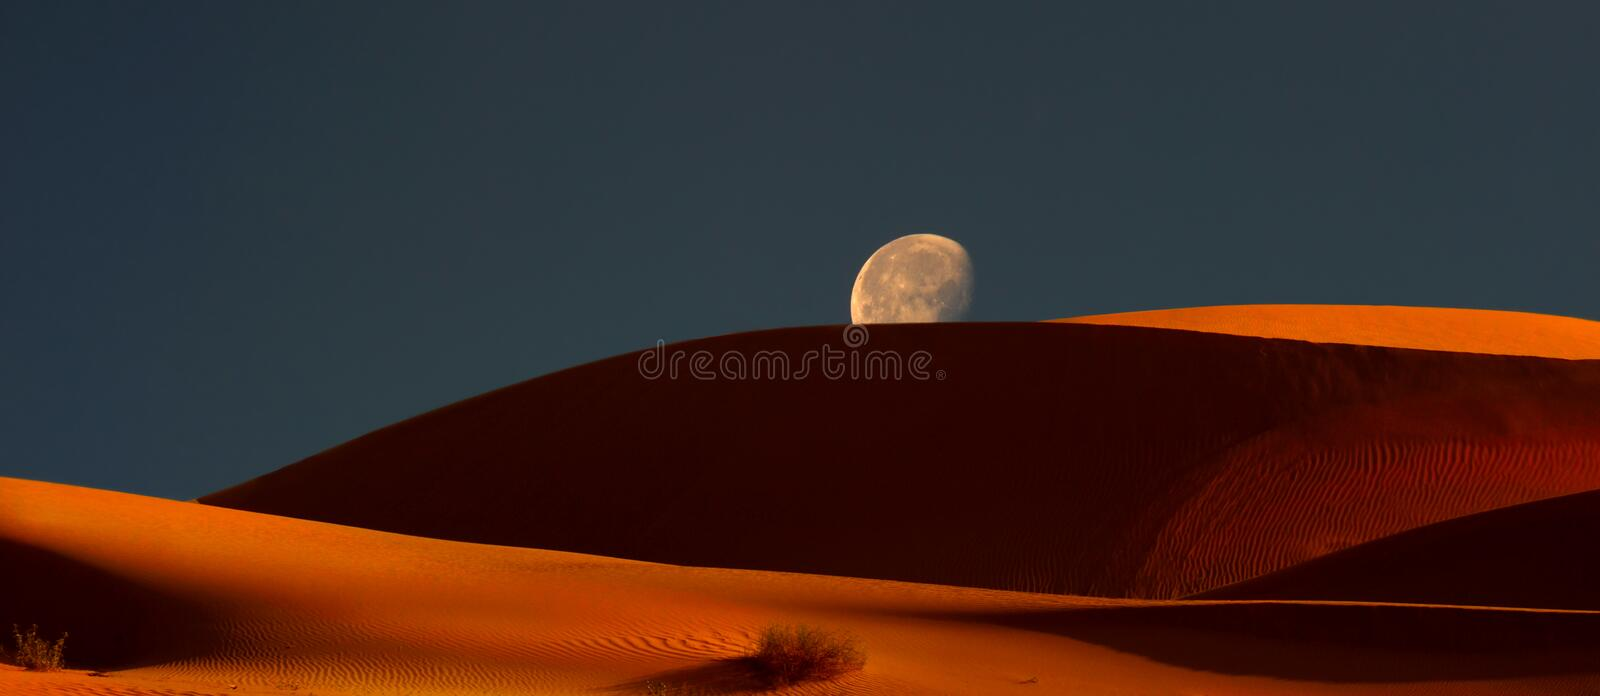 Moonrise sobre as dunas imagem de stock